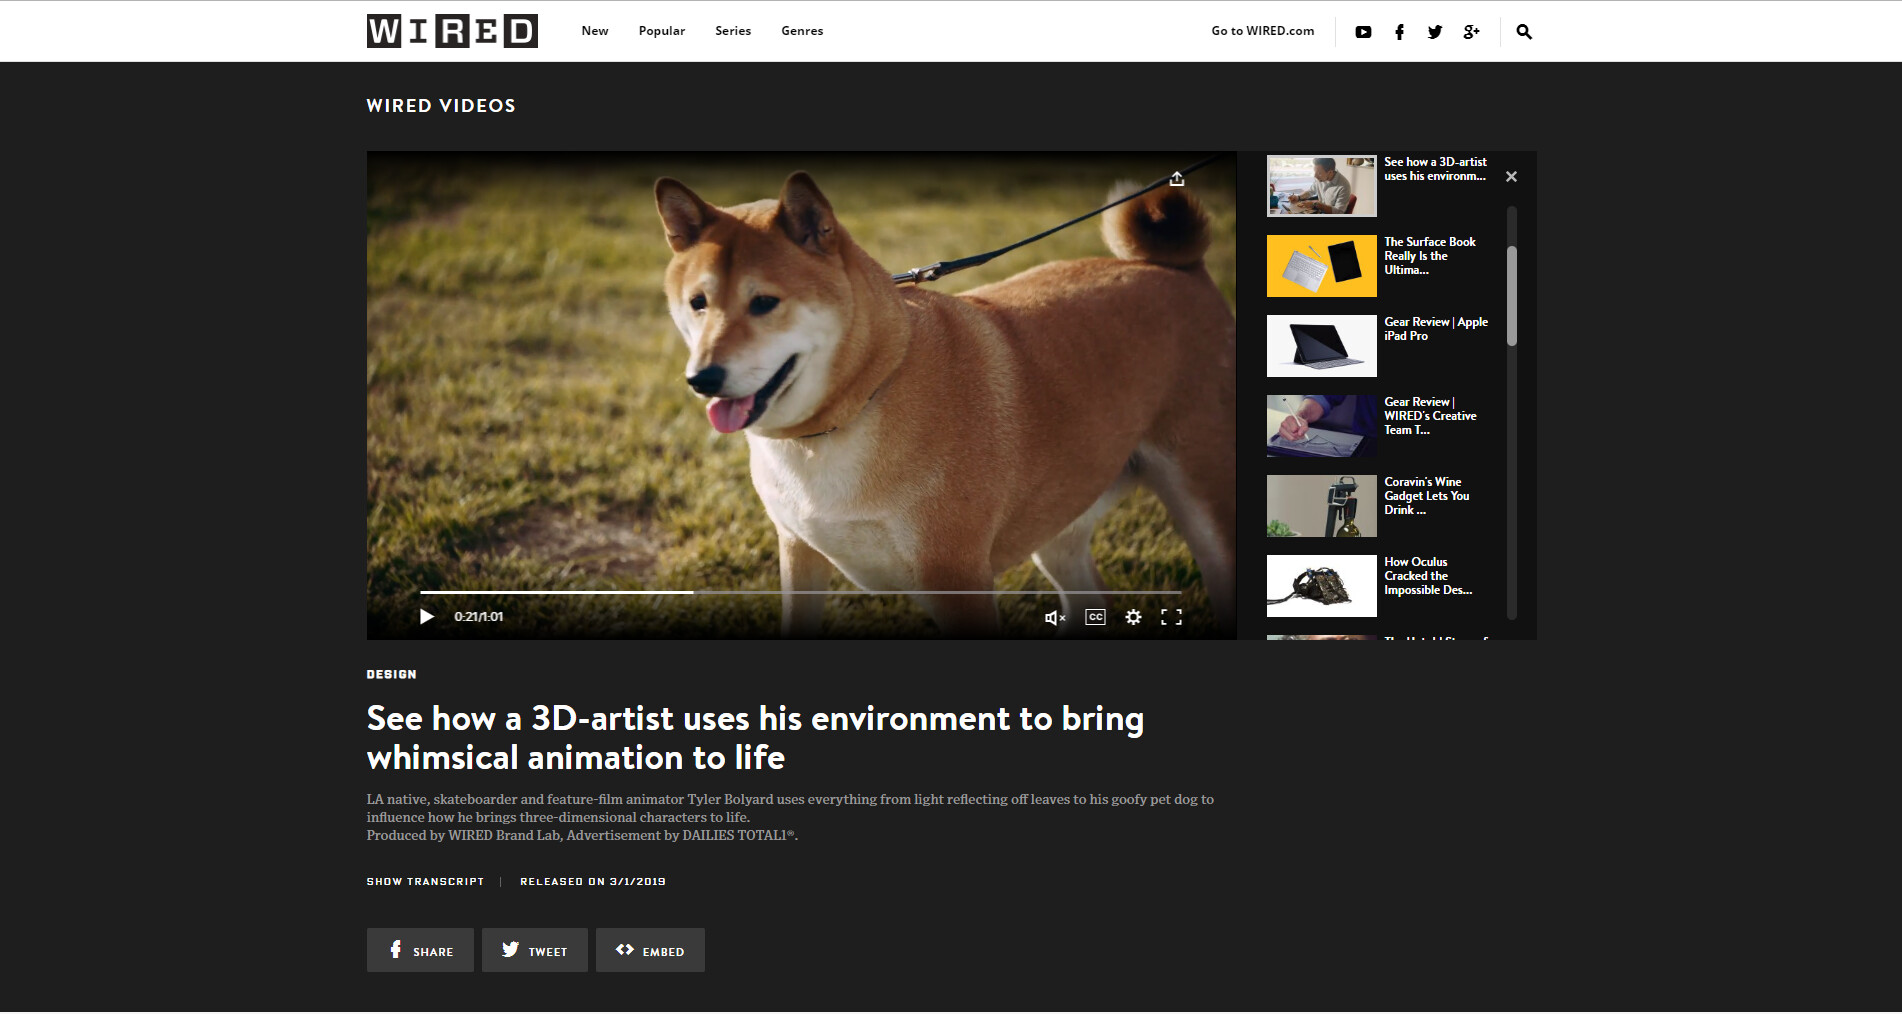 WIRED Web Feature